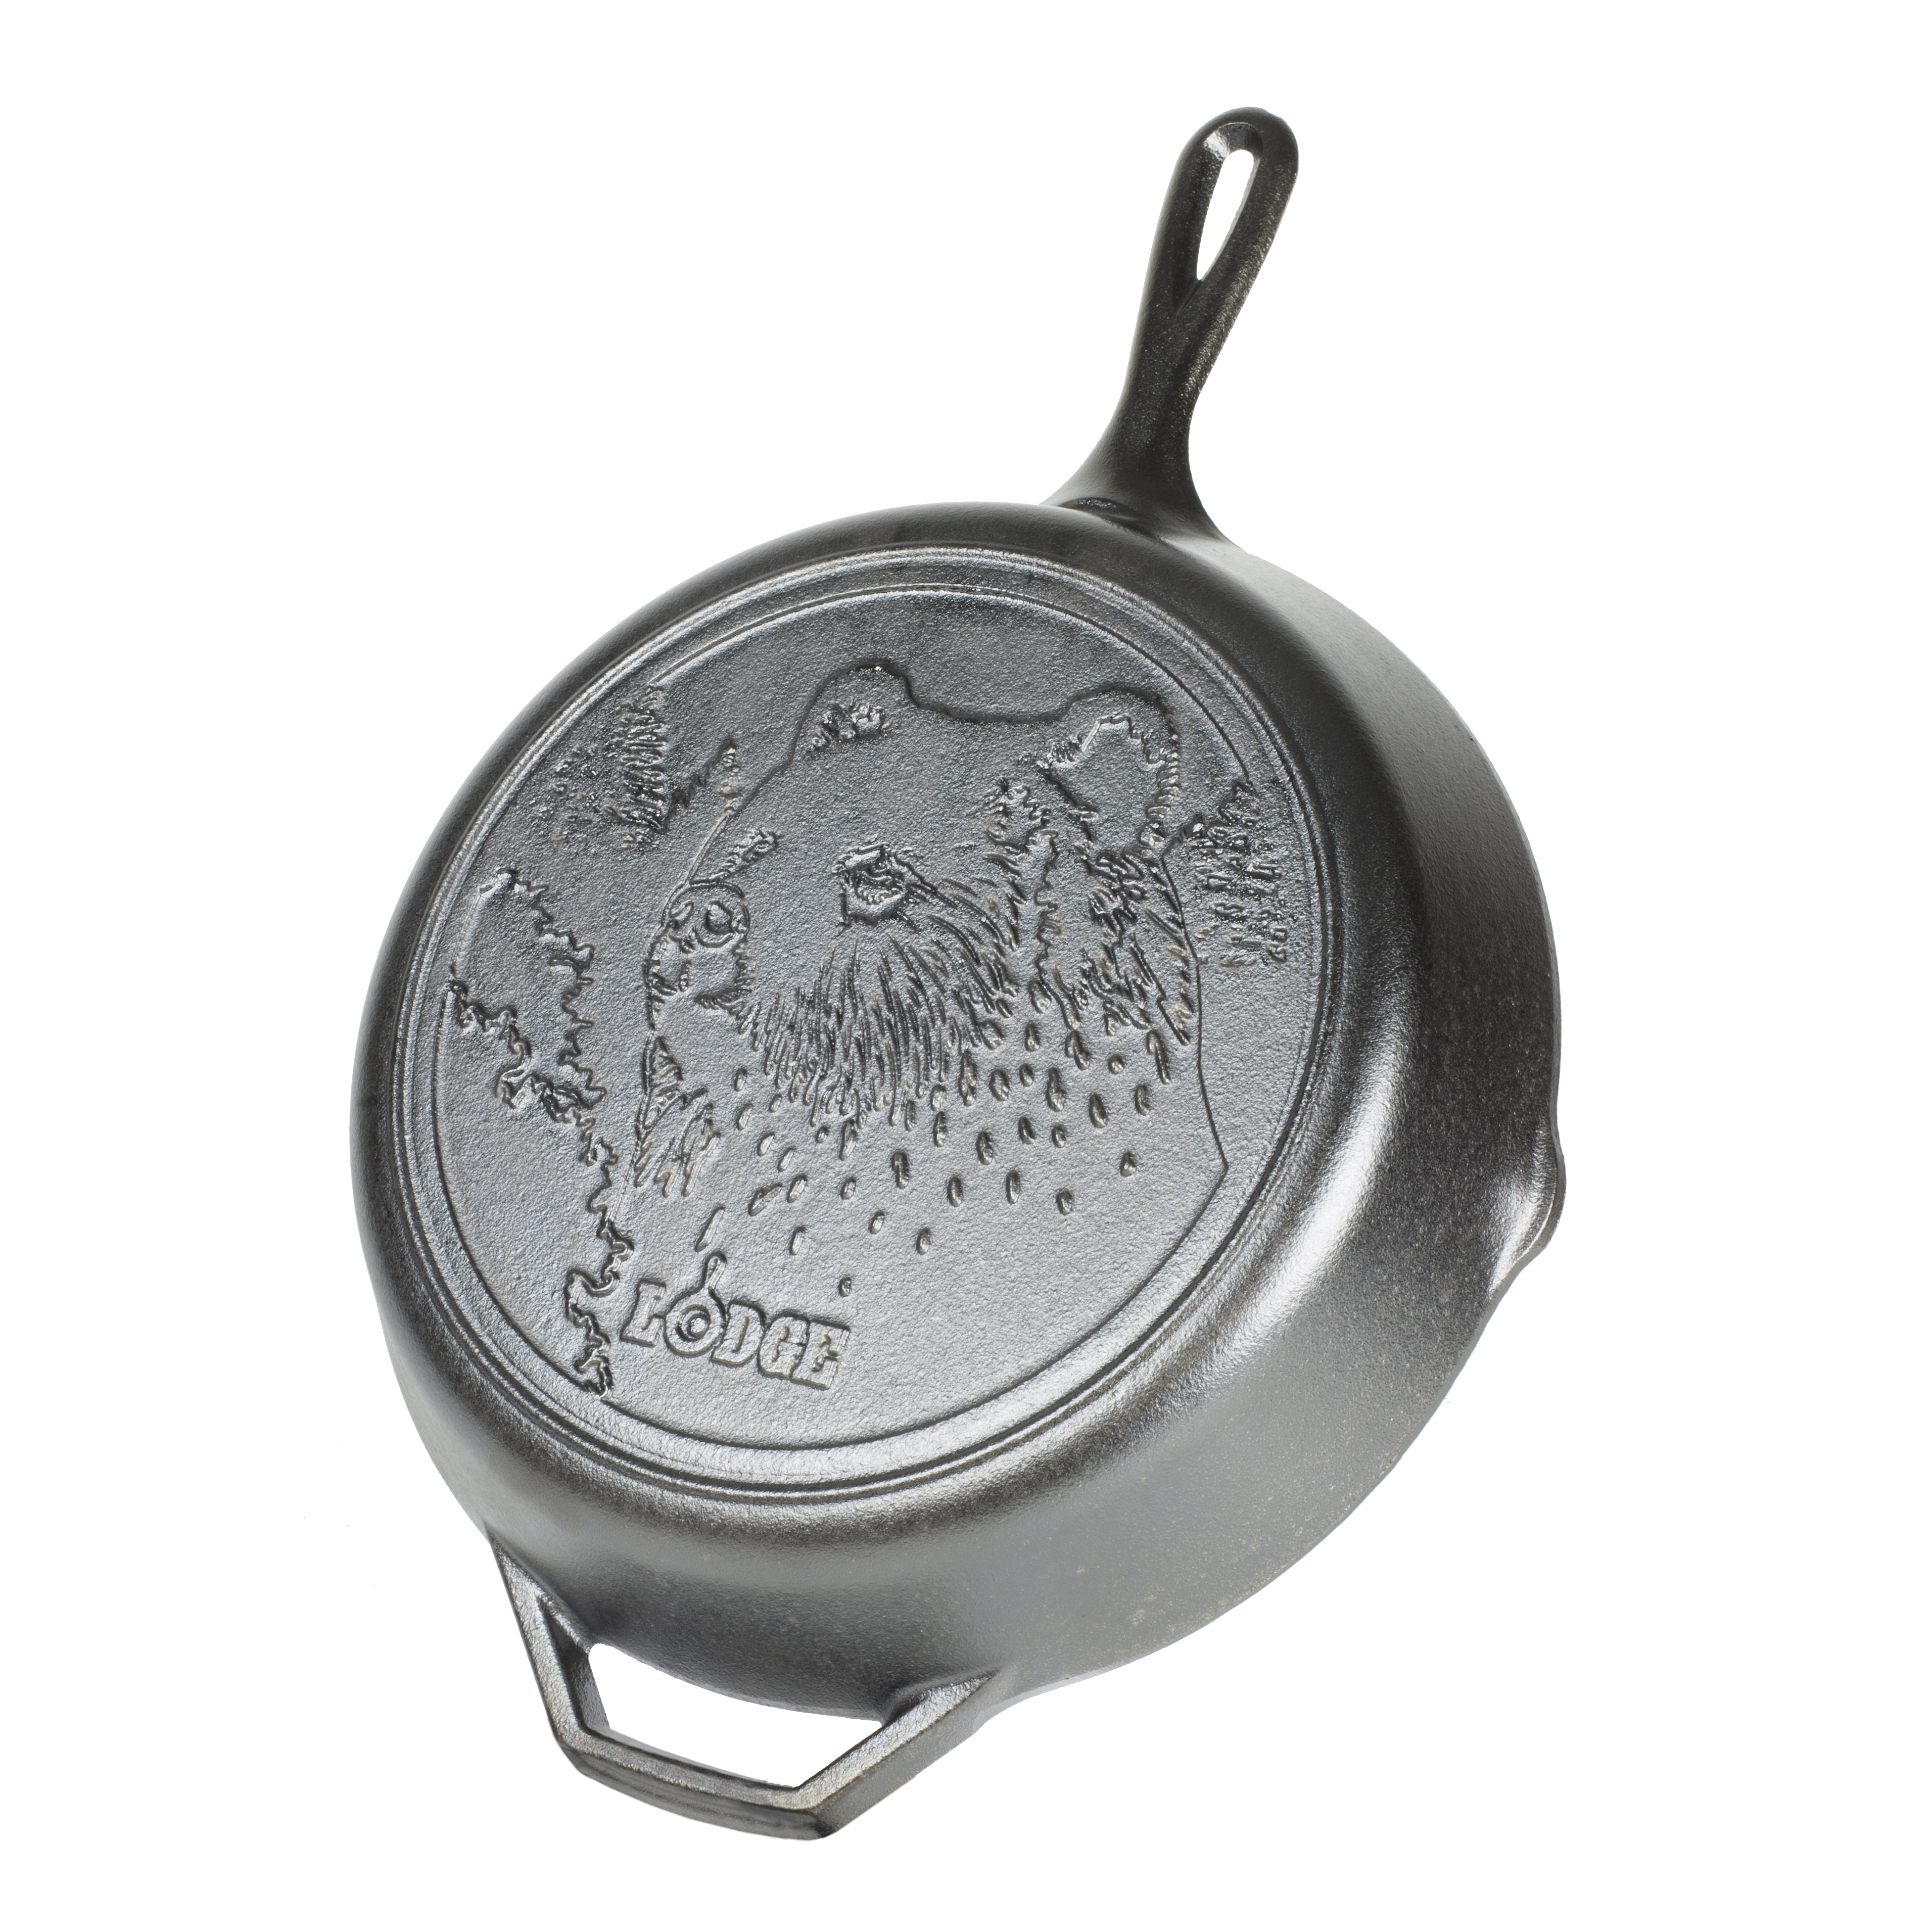 Lodge Manufacturing L10SKWLBR cast iron fry pan